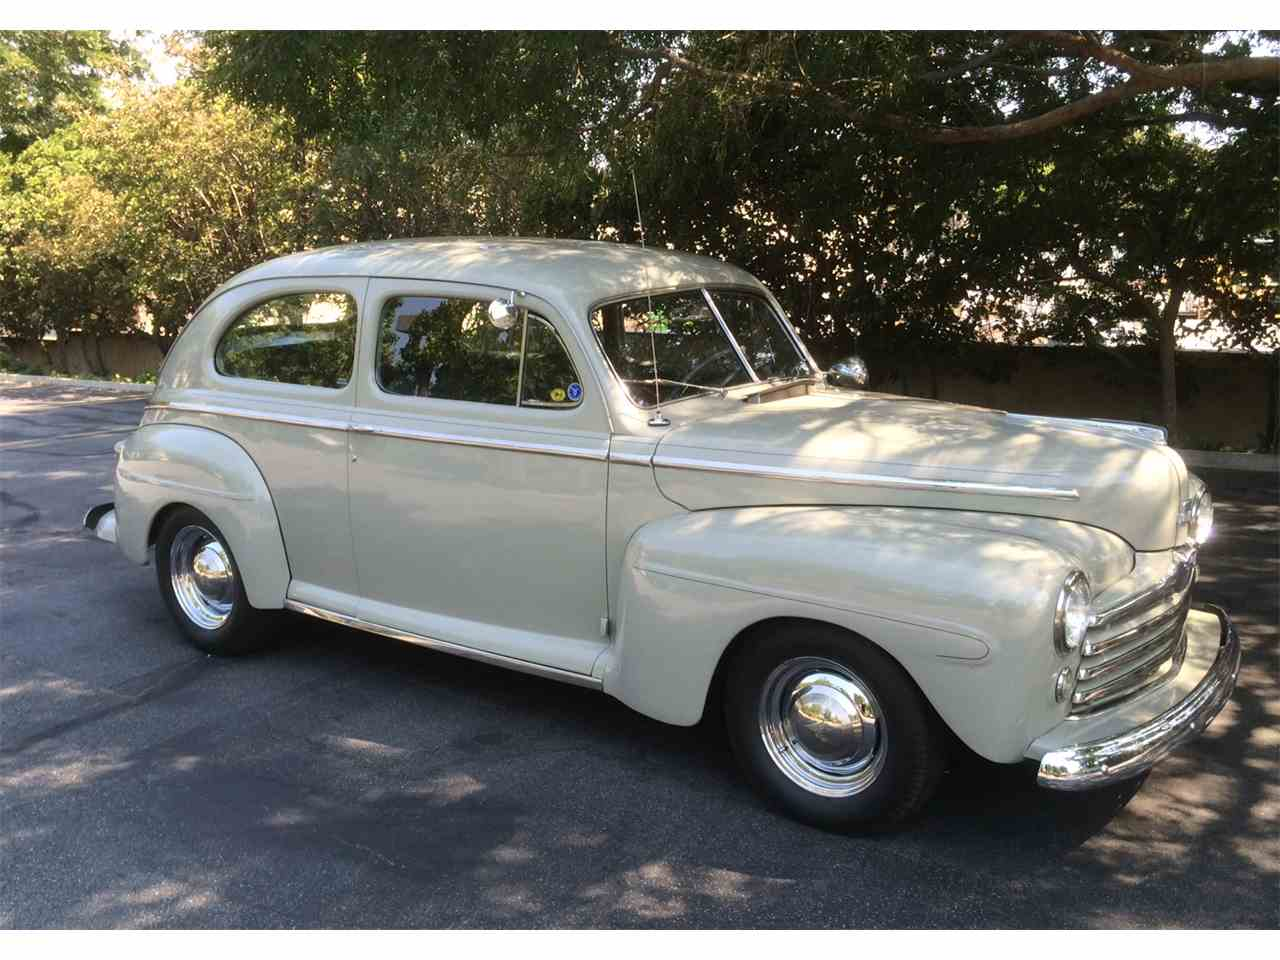 Large Picture of '47 Coupe located in Calif - $15,000.00 Offered by a Private Seller - I7QD